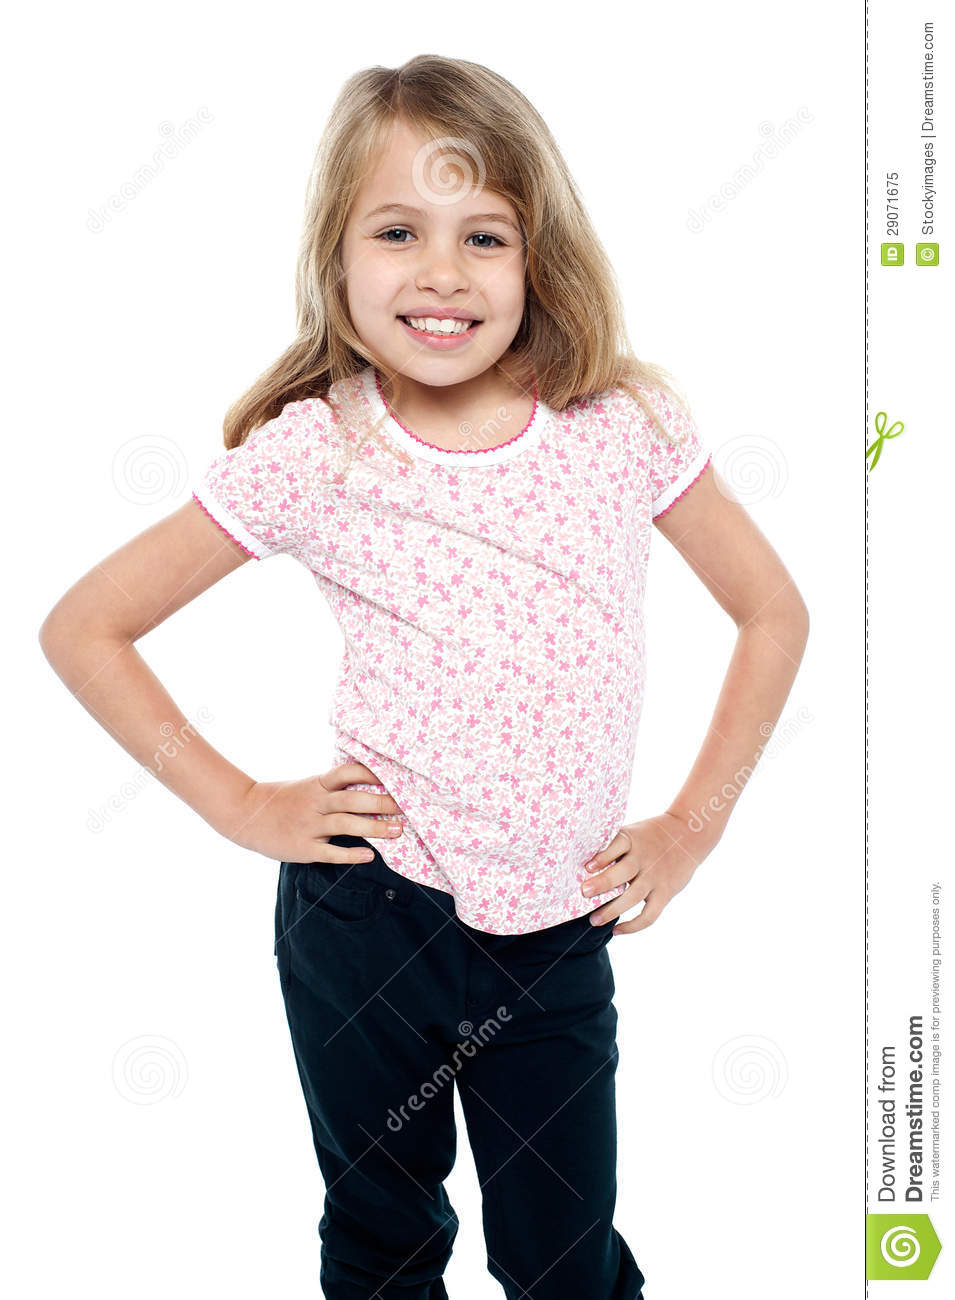 Stylish portrait of a charming young girl child royalty free stock photo image 29071675 - Charming teenage girls image ...